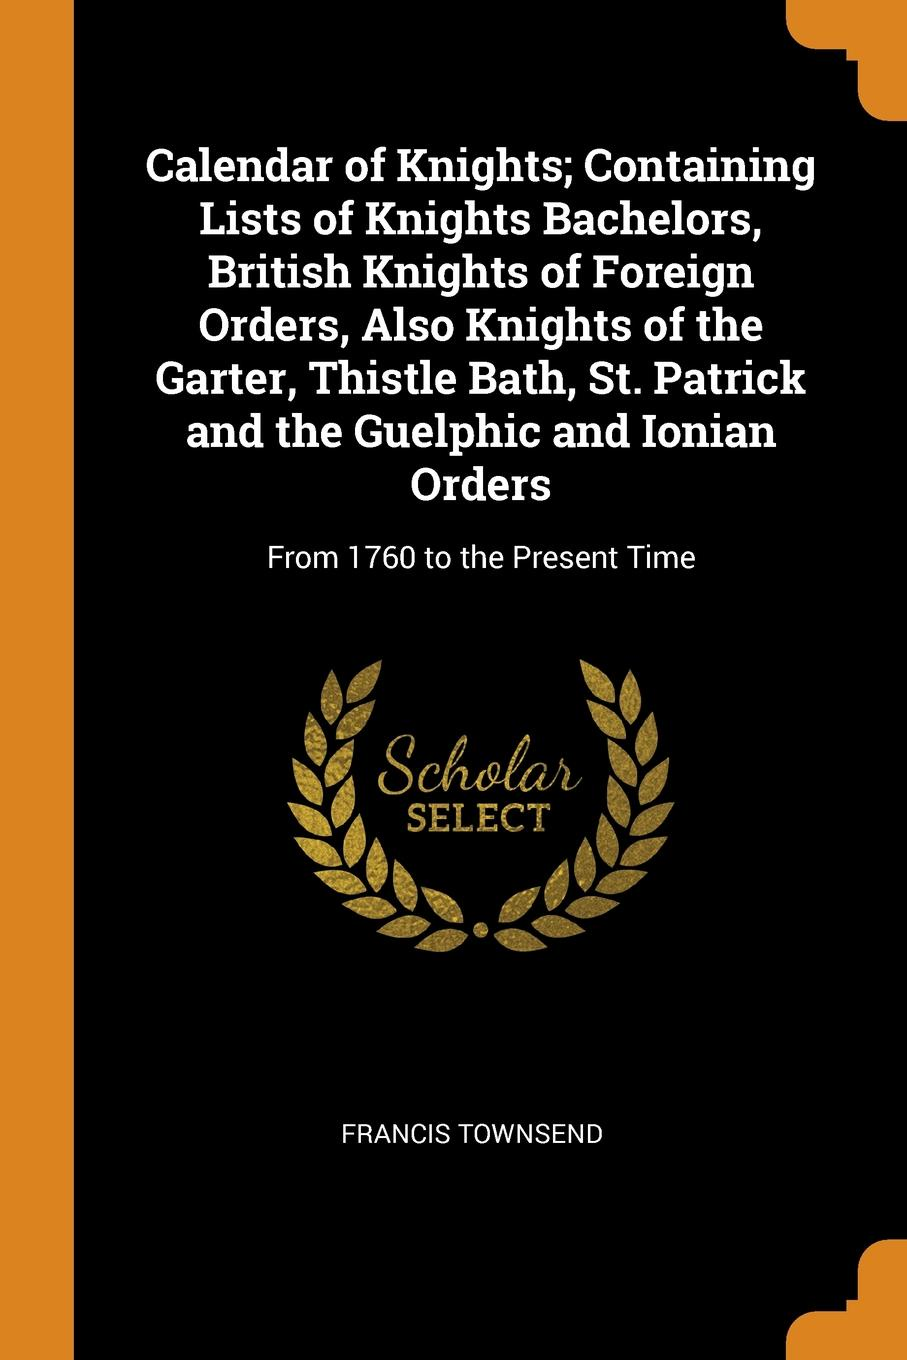 Francis Townsend Calendar of Knights; Containing Lists of Knights Bachelors, British Knights of Foreign Orders, Also Knights of the Garter, Thistle Bath, St. Patrick and the Guelphic and Ionian Orders. From 1760 to the Present Time жан воглер the knights эрик якобсен jan vogler and the knights experience live from new york